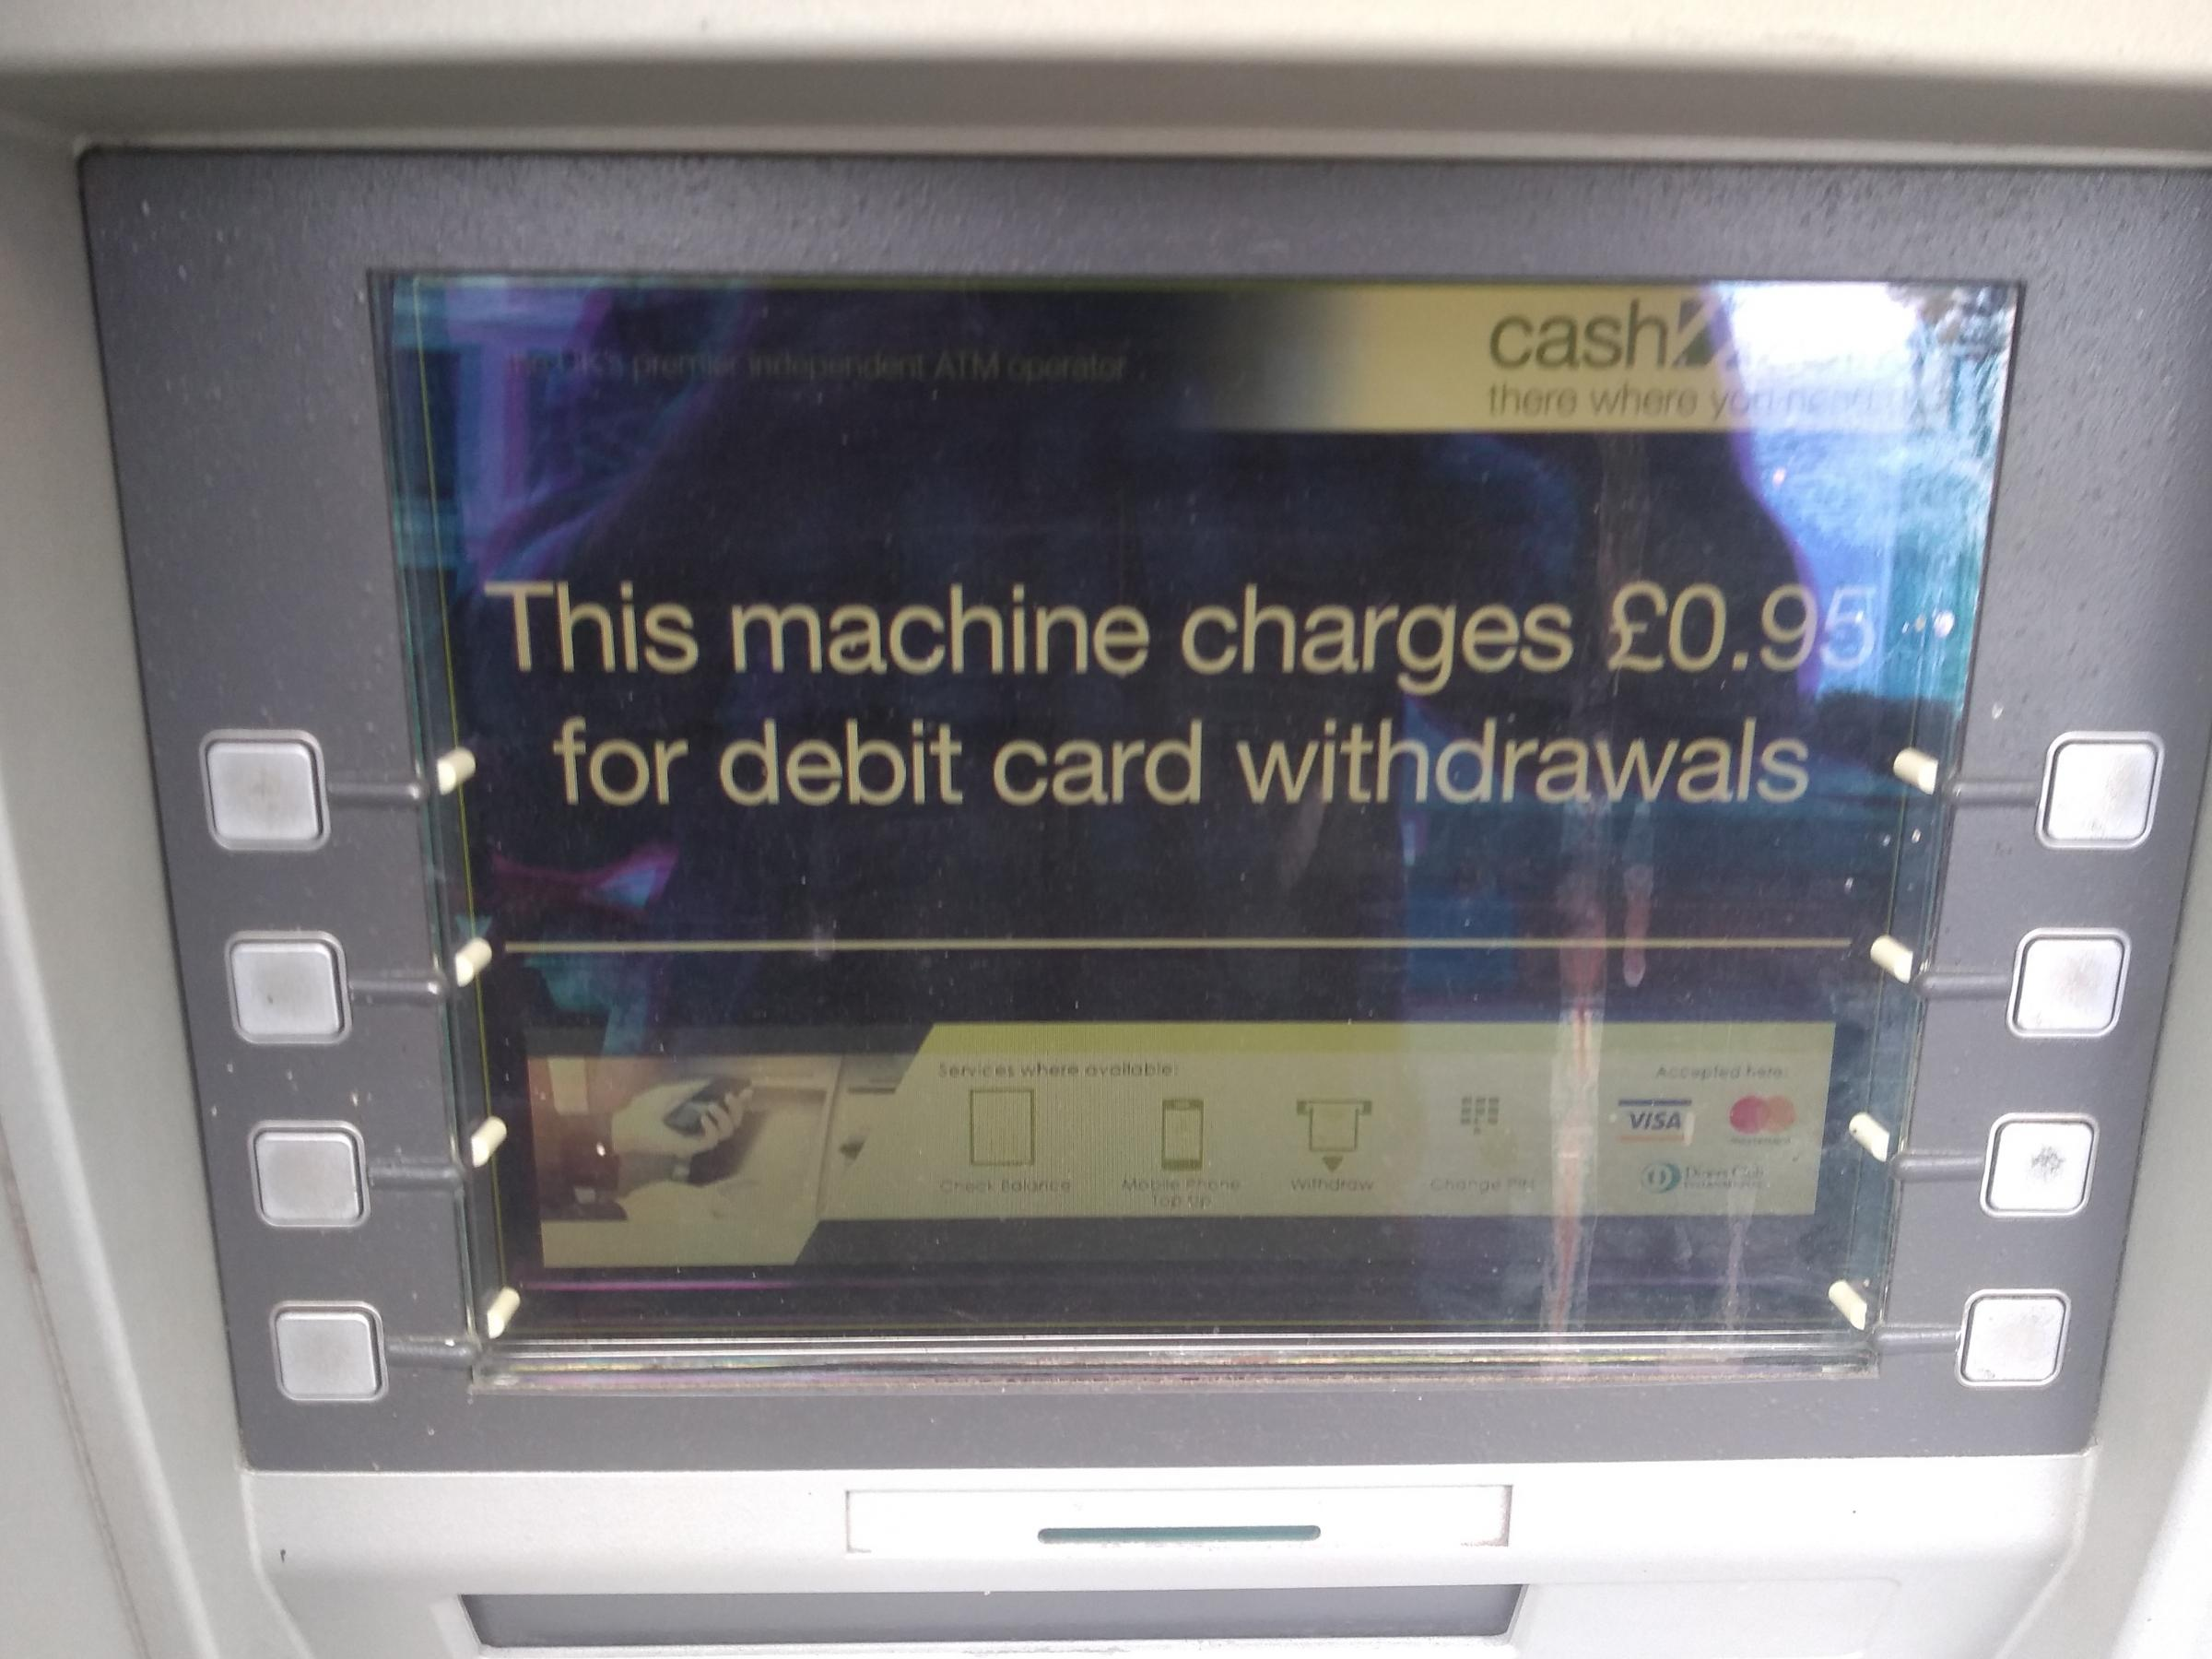 Illegal ATMs charging residents in poorer areas to access cash